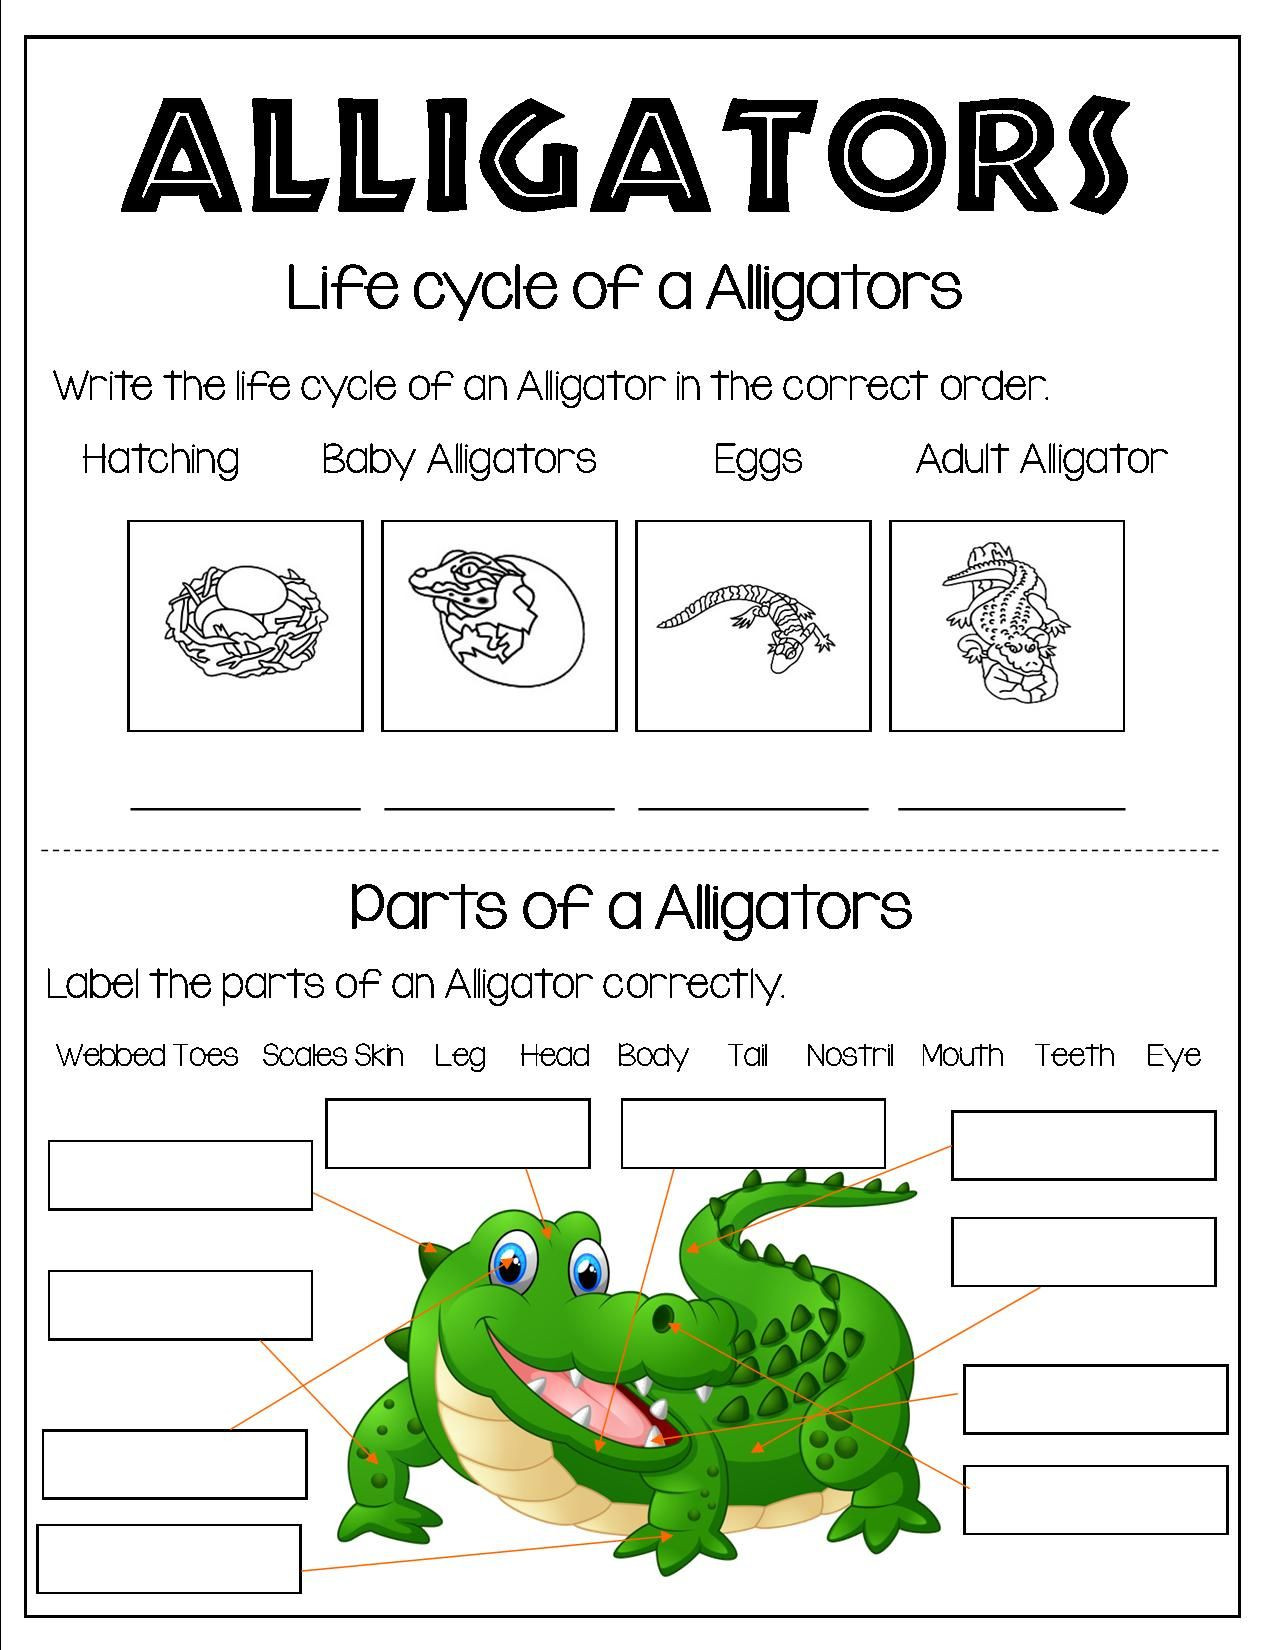 Amphibian Worksheets for Second Grade Grade 1 and Grade 2 Students Can Learn About Reptiles All